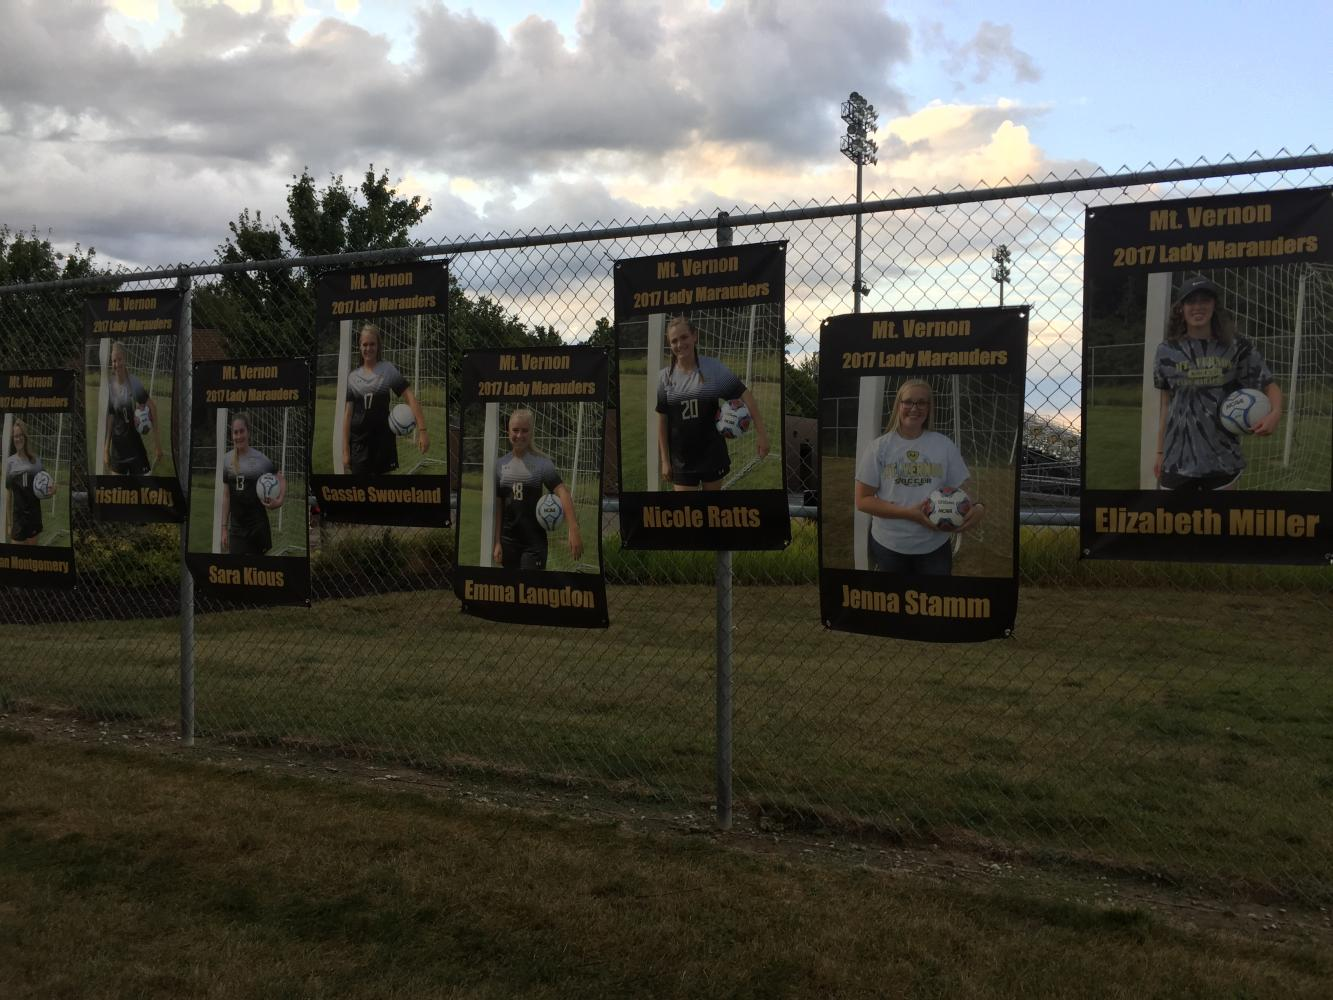 The posters of the senior soccer players